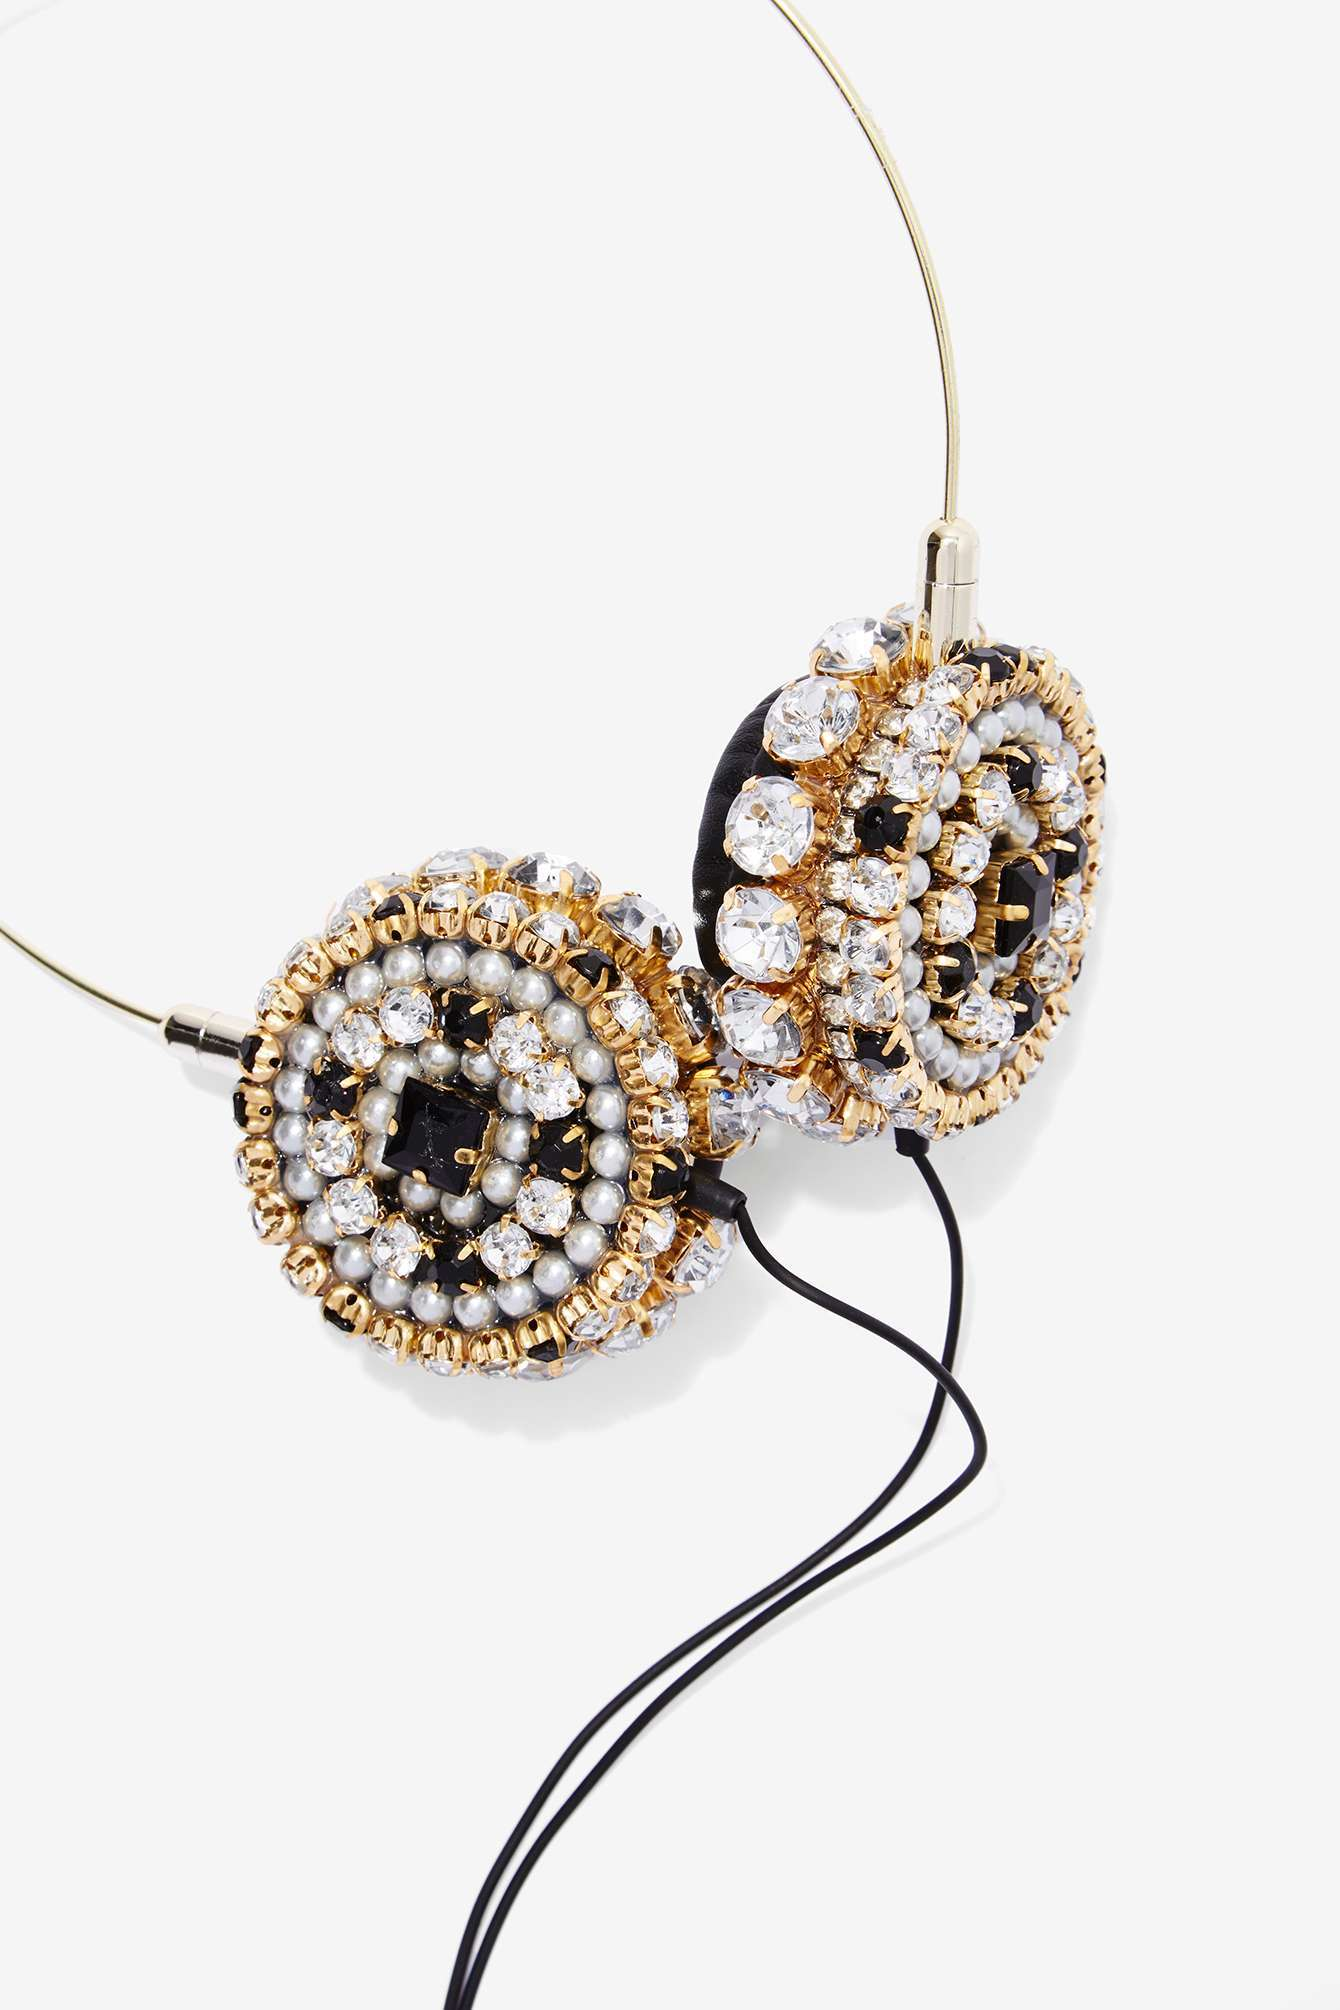 Nasty-Gal-Skinnydip London-Zara -Martin- Bling-Headphones-4